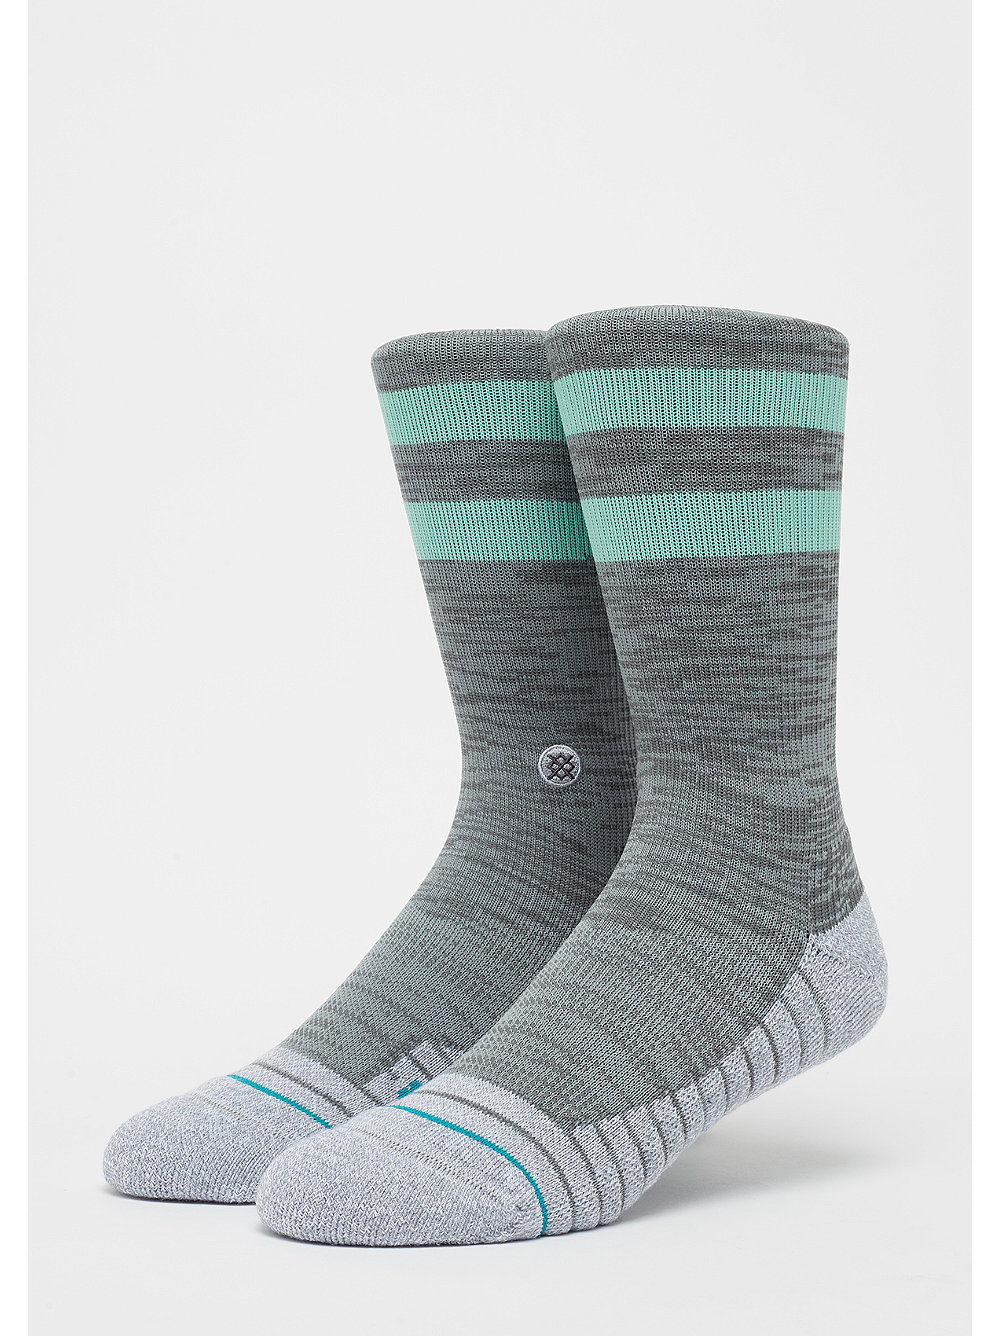 Stance Athletic Crew Athletic Franchise grey